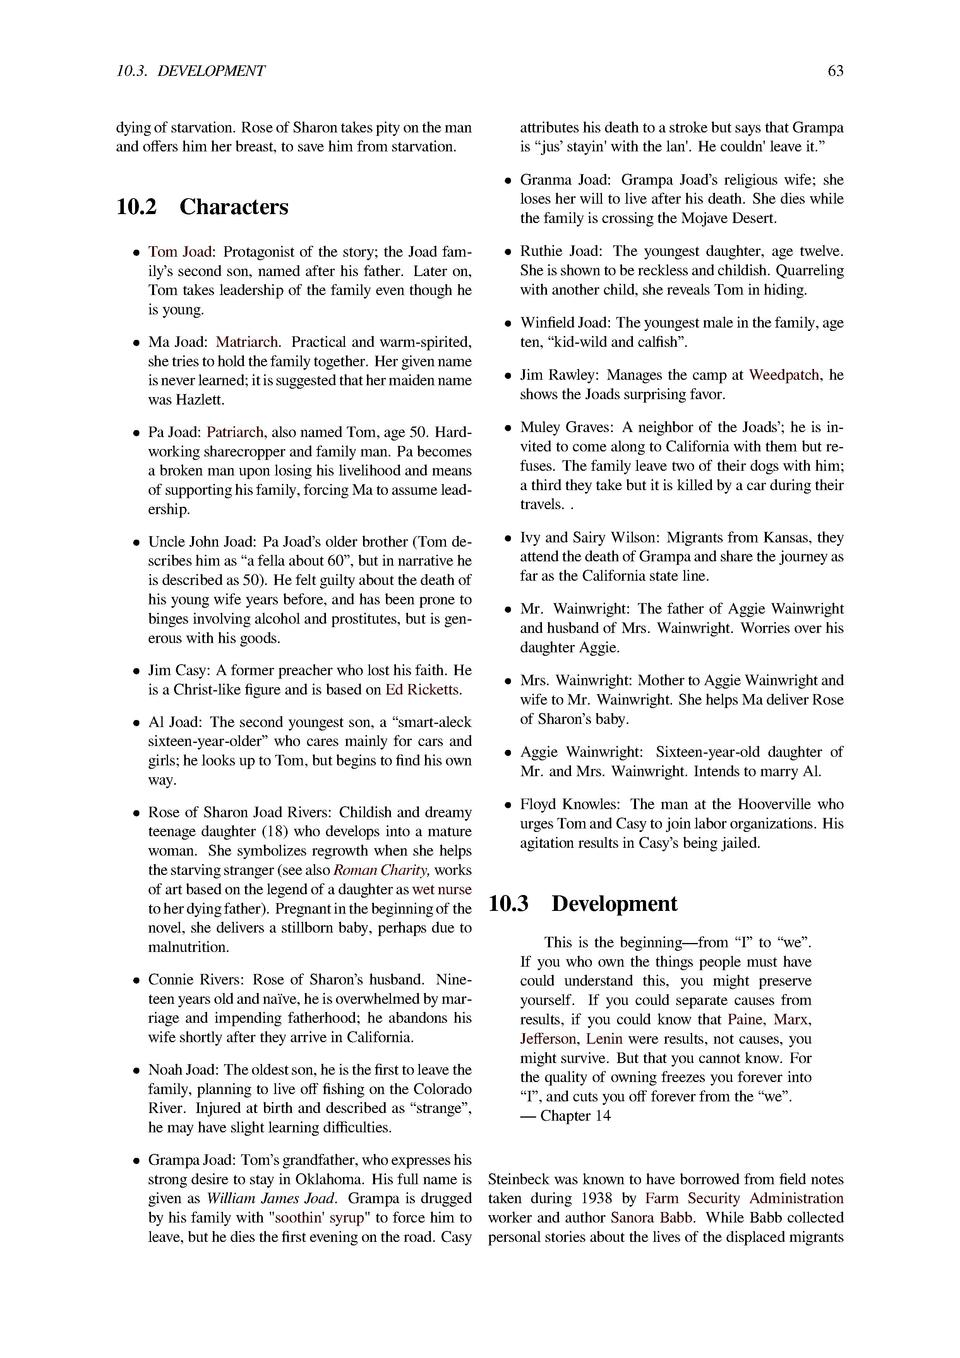 worksheet The Men Who Built America Worksheet online resources banned books libguides at south mountain community college